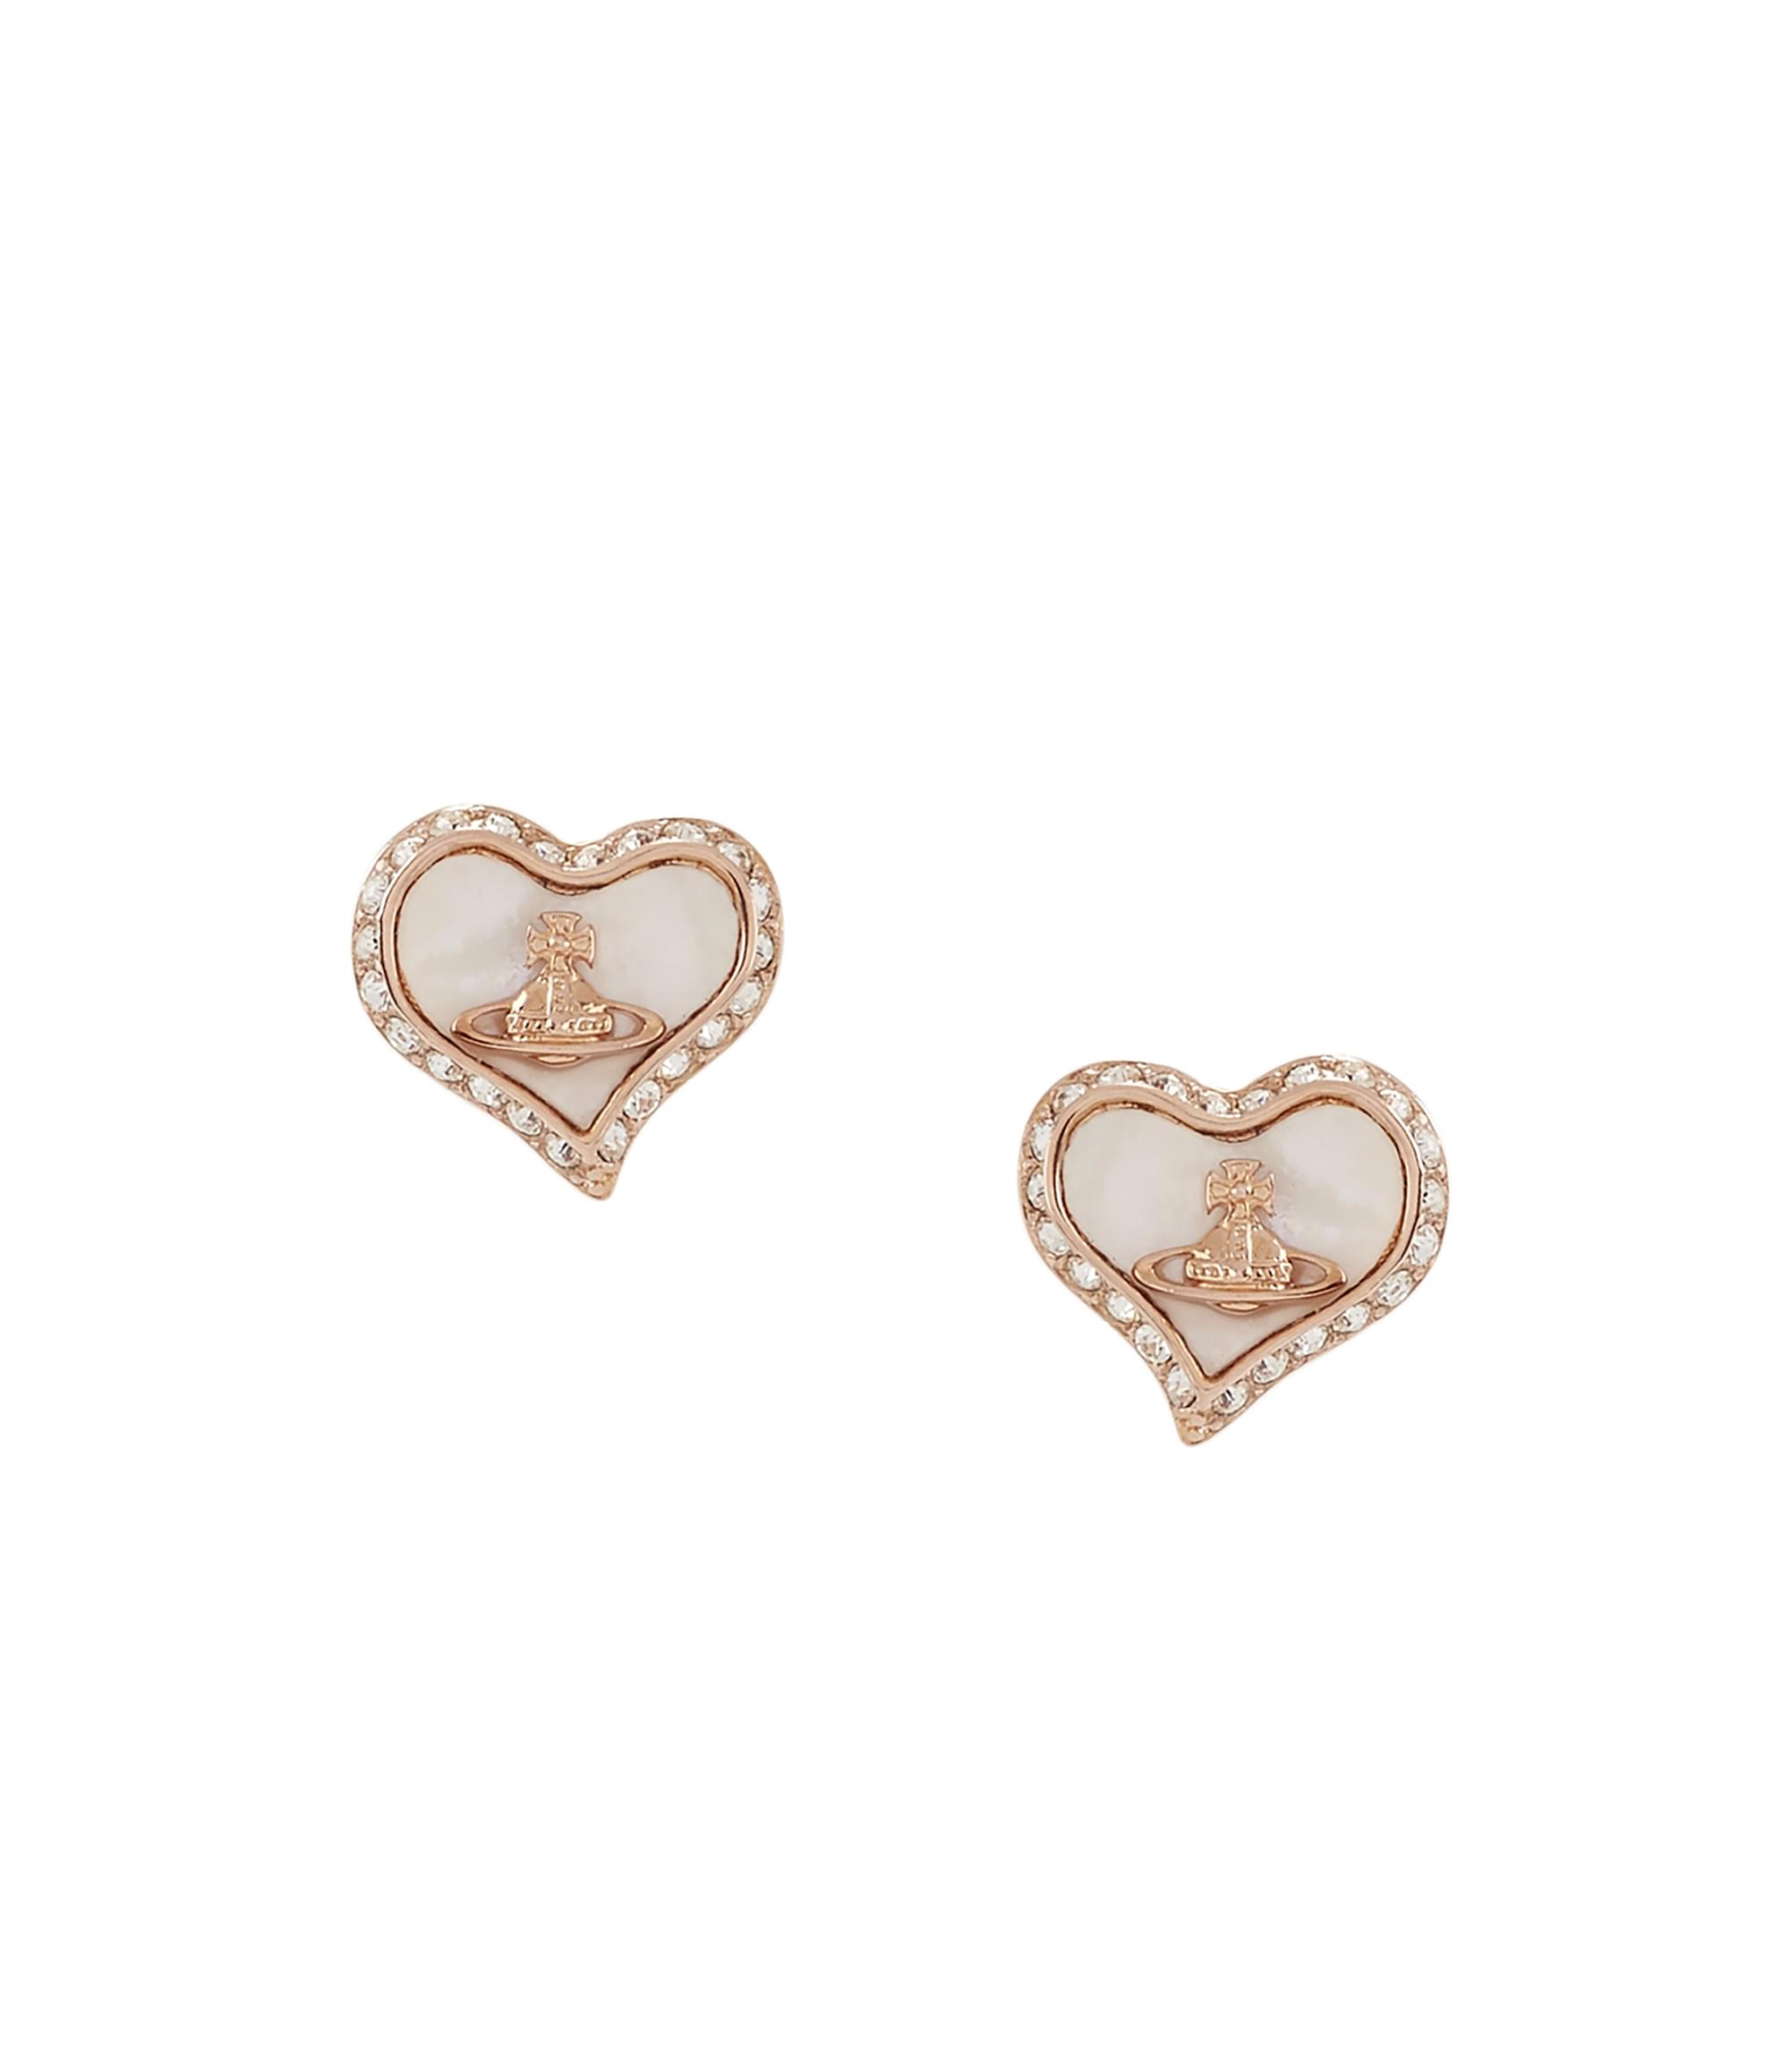 Vivienne Westwood Petra Earrings Pink Gold